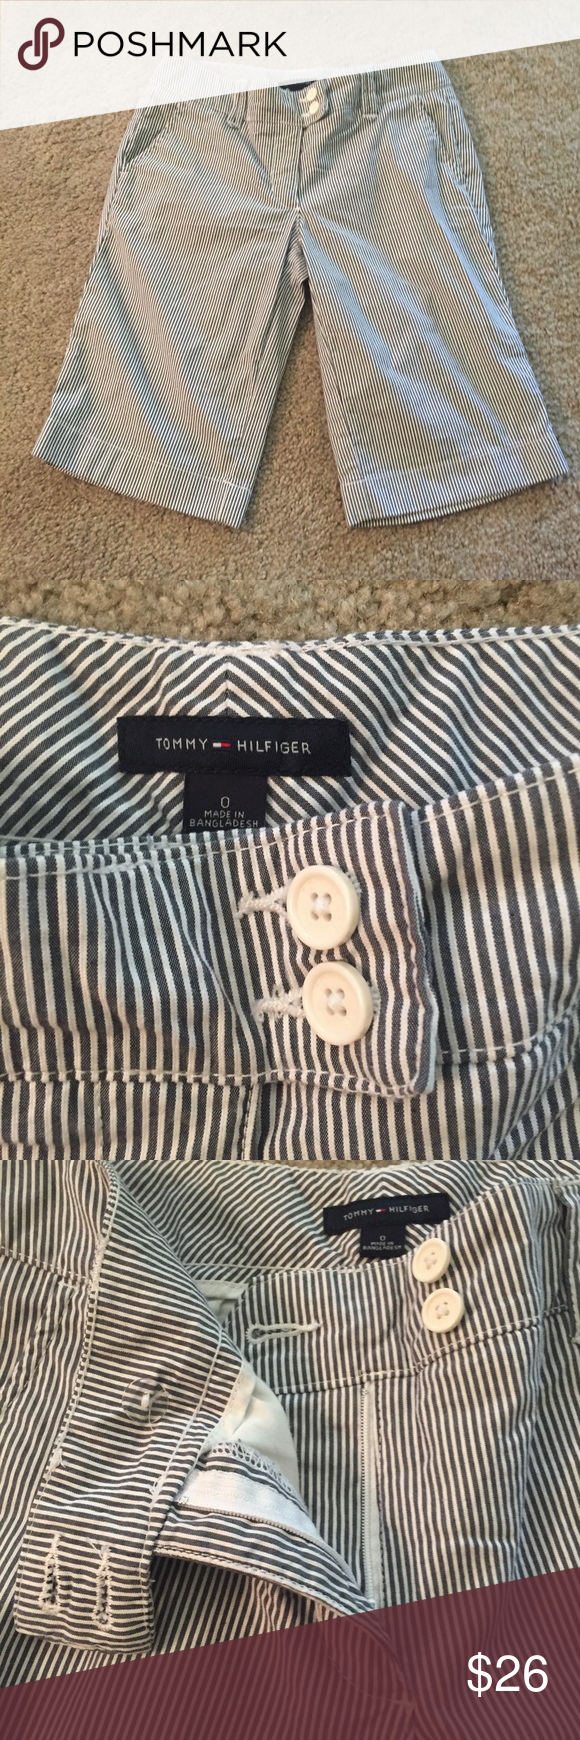 Tommy Hilfiger Striped Bermuda Shorts Blue and white striped Bermuda shorts. Excellent condition. Tommy Hilfiger Shorts Bermudas